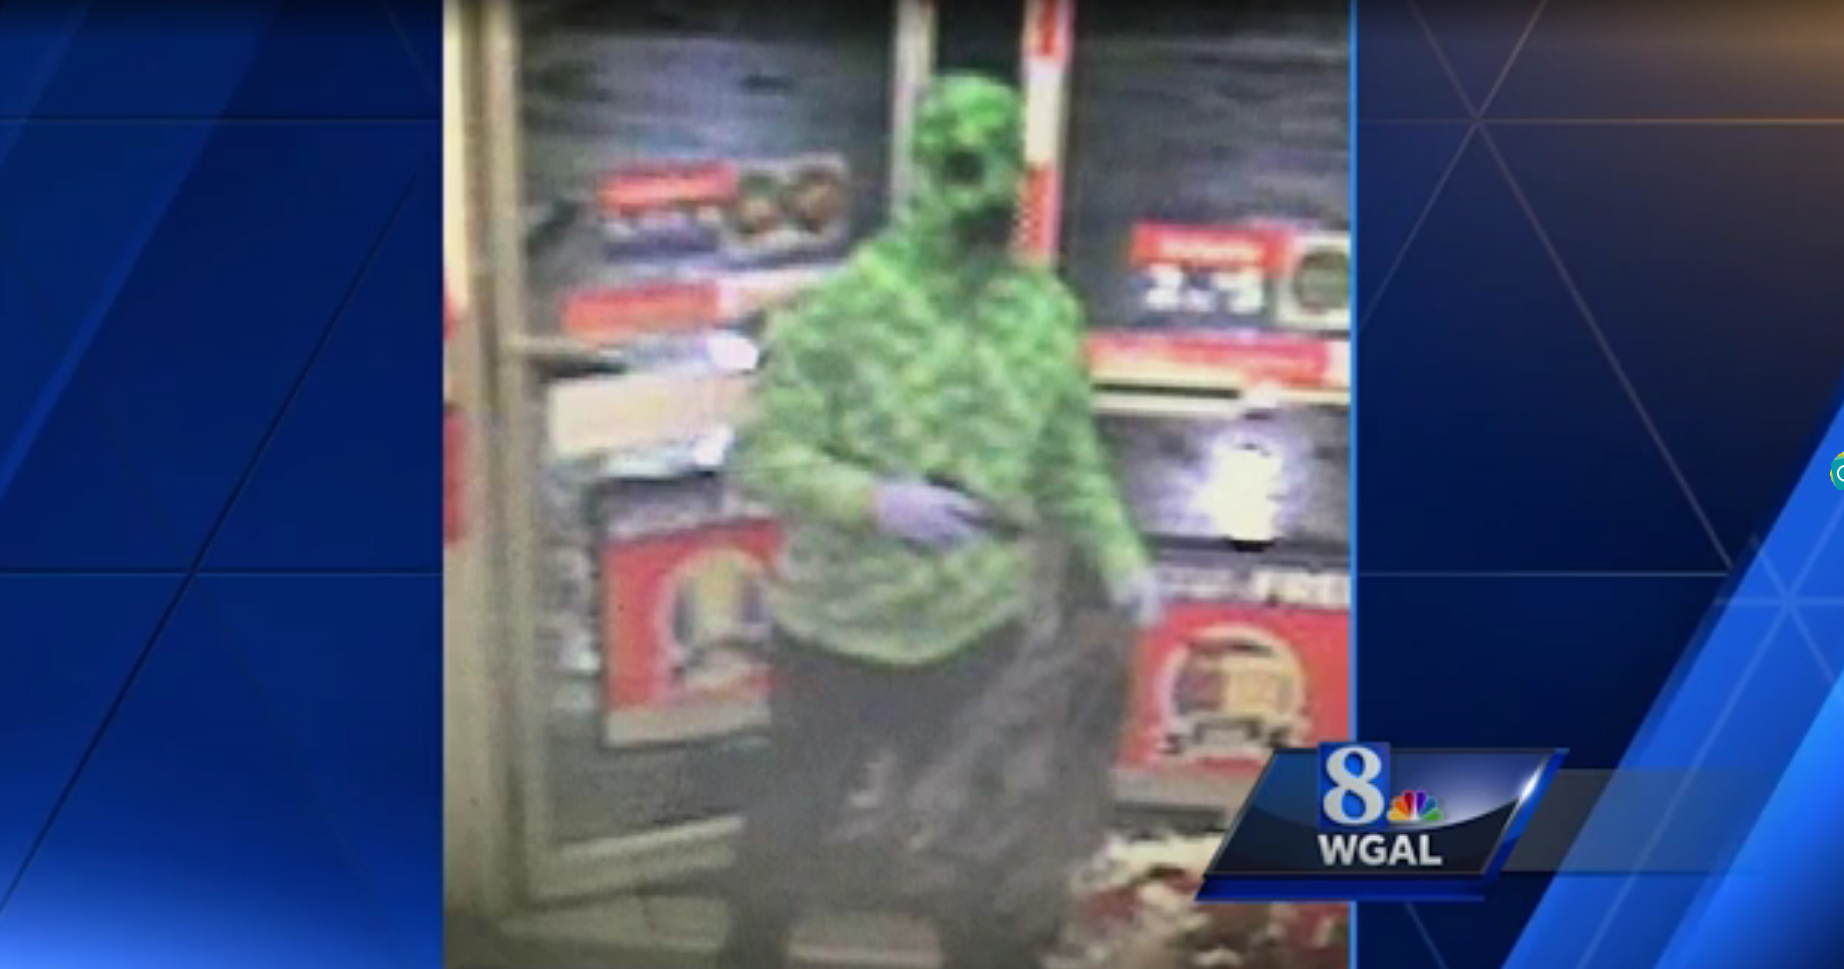 Armed robber wearing Minecraft outfit still at large screenshot